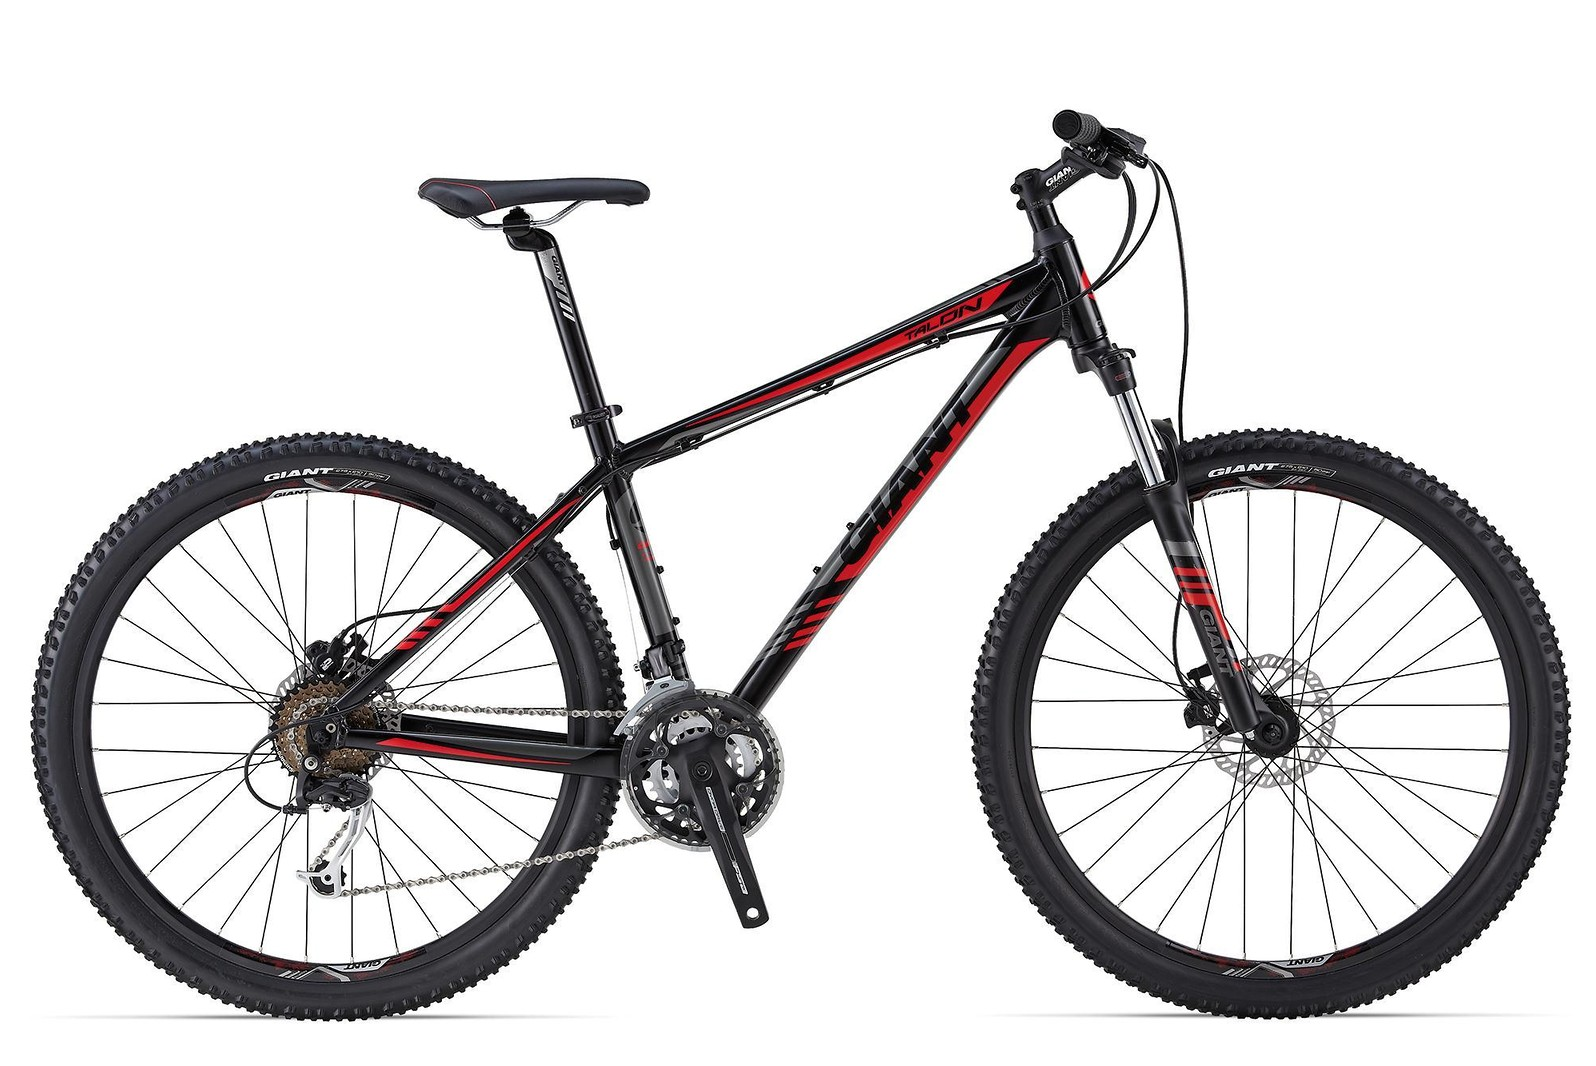 2014 Giant Talon 27.5 4 Bike Talon_27.5_4_black